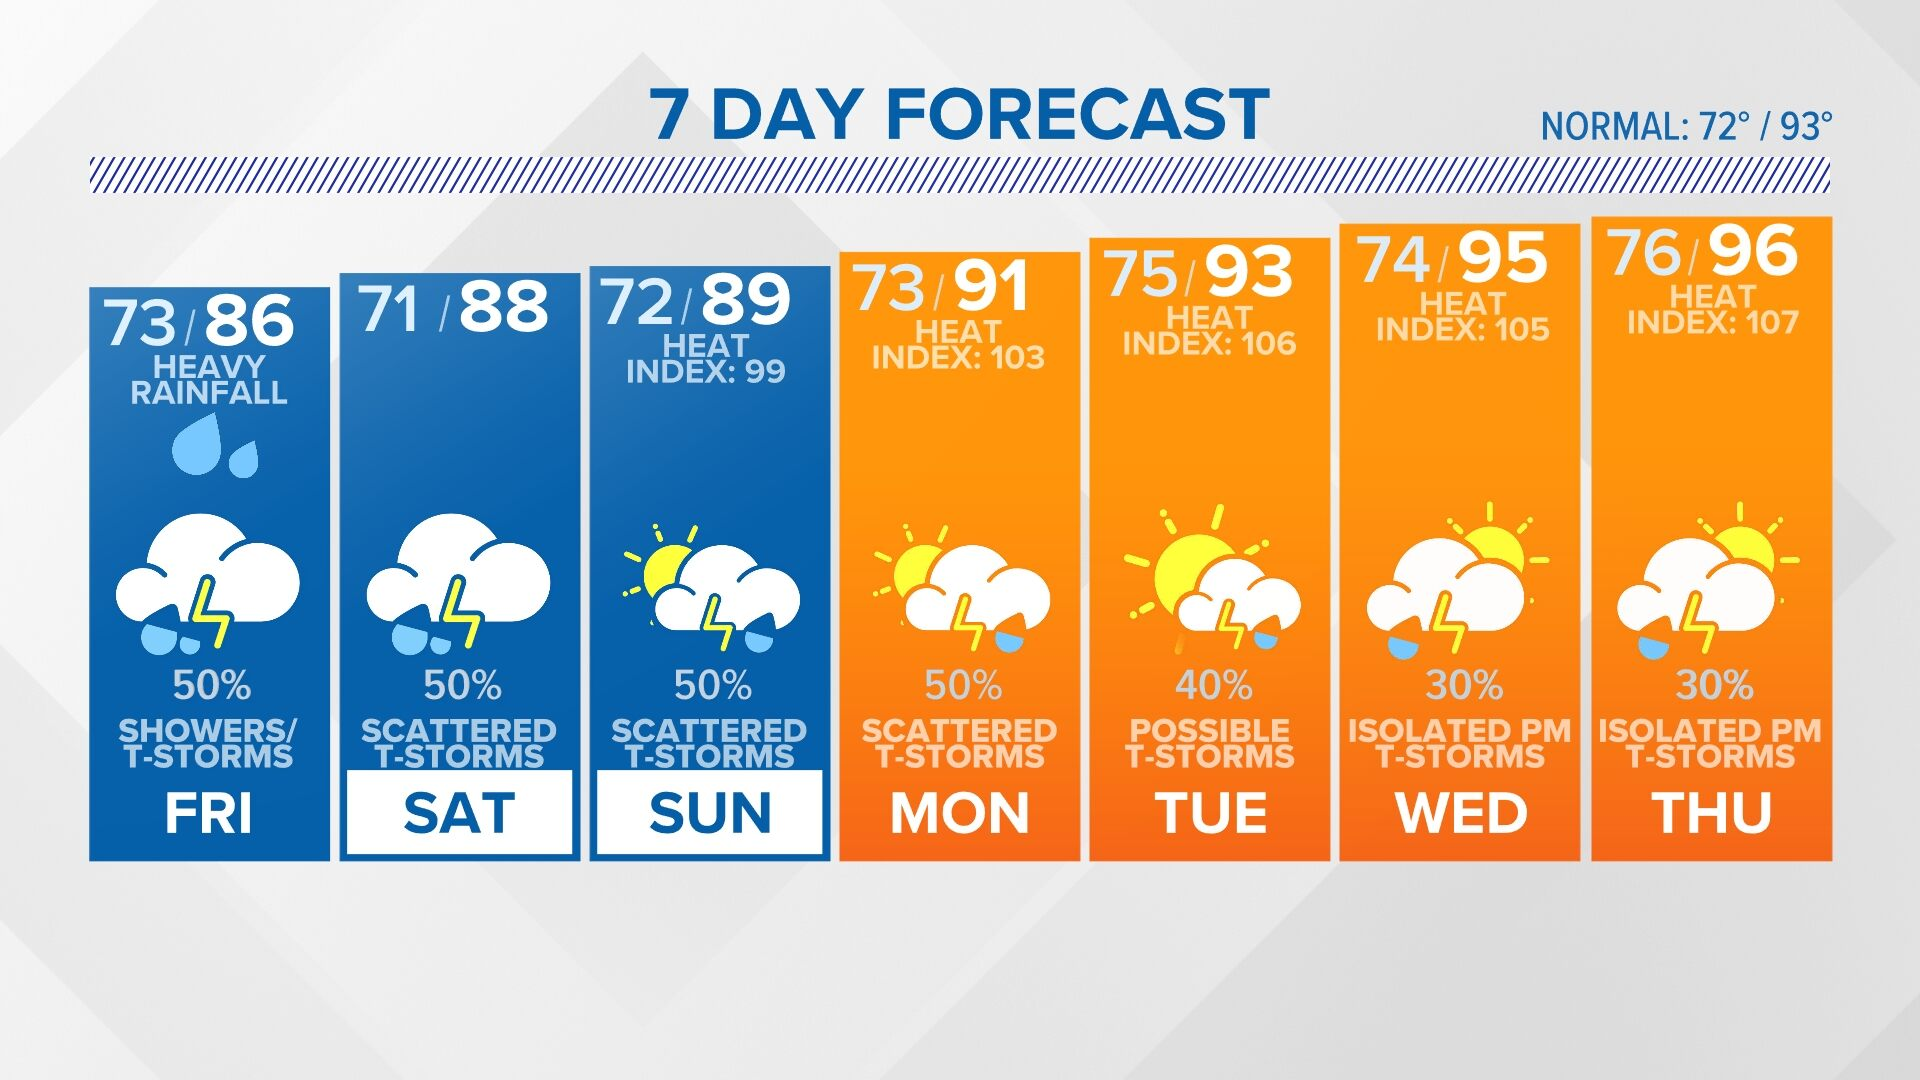 10 Day Forecast On Wltx In Columbia